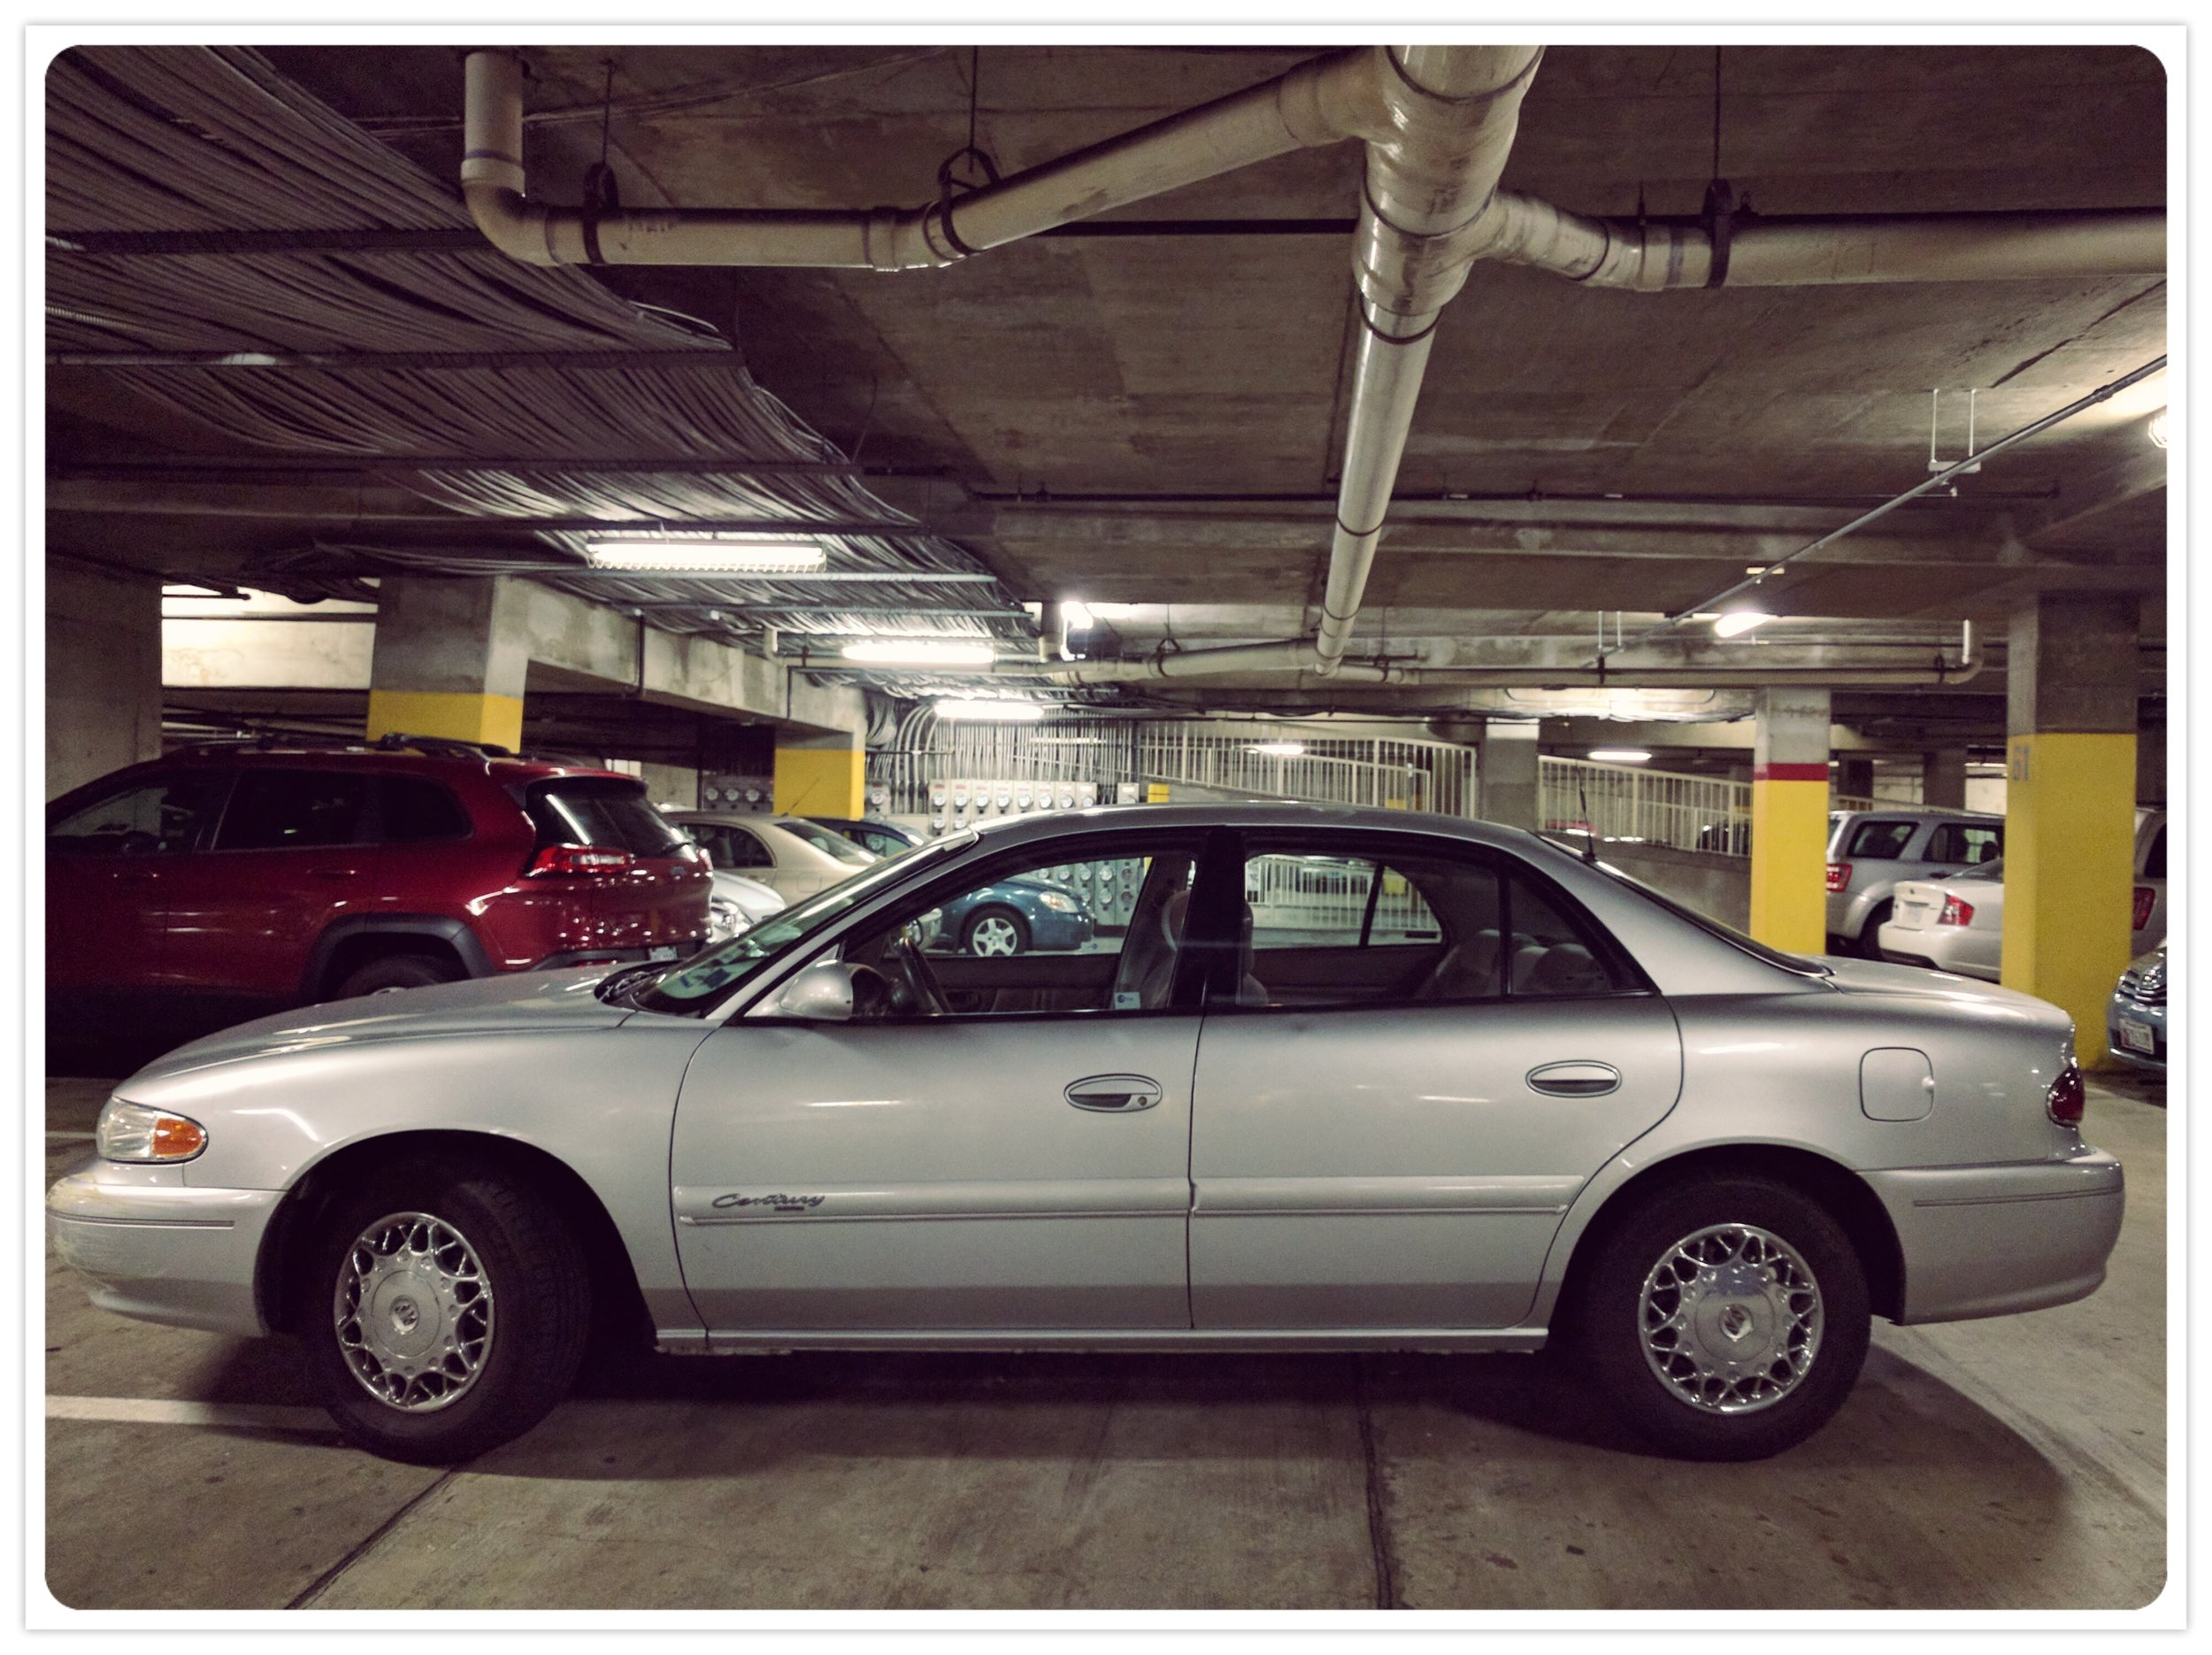 I know it looks like a LeSabre...but it's a Century! And it really adds some class to our parking garage.